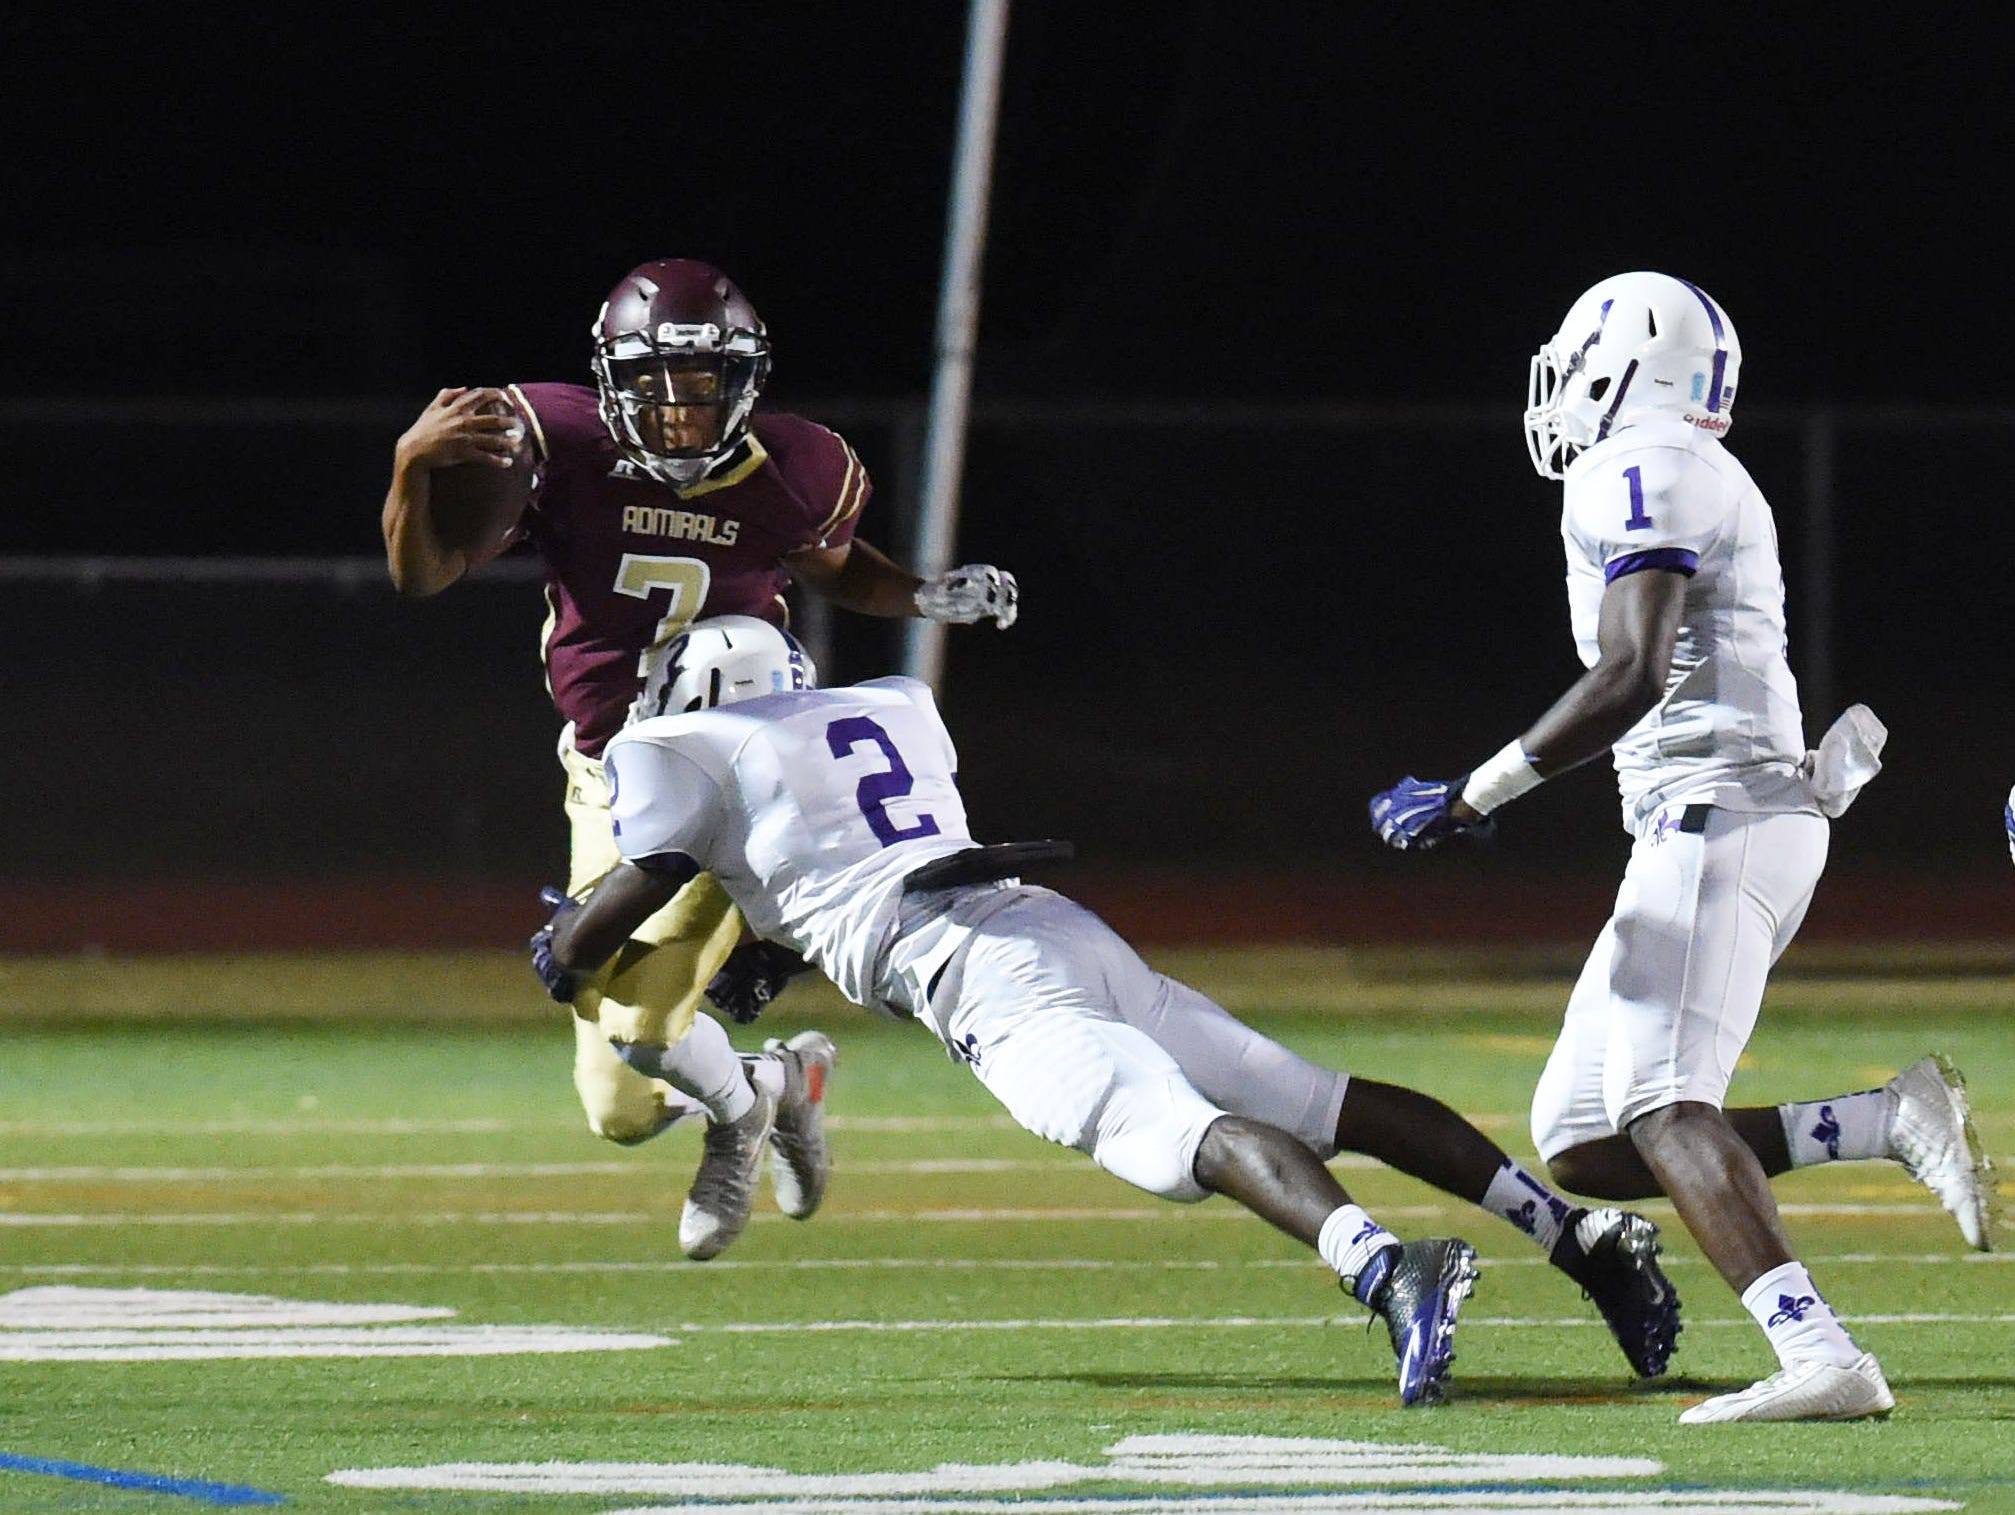 Arlington's Justin Leigh tries to jump out of the way of New Rochelle's Manny Walker during Friday's game.